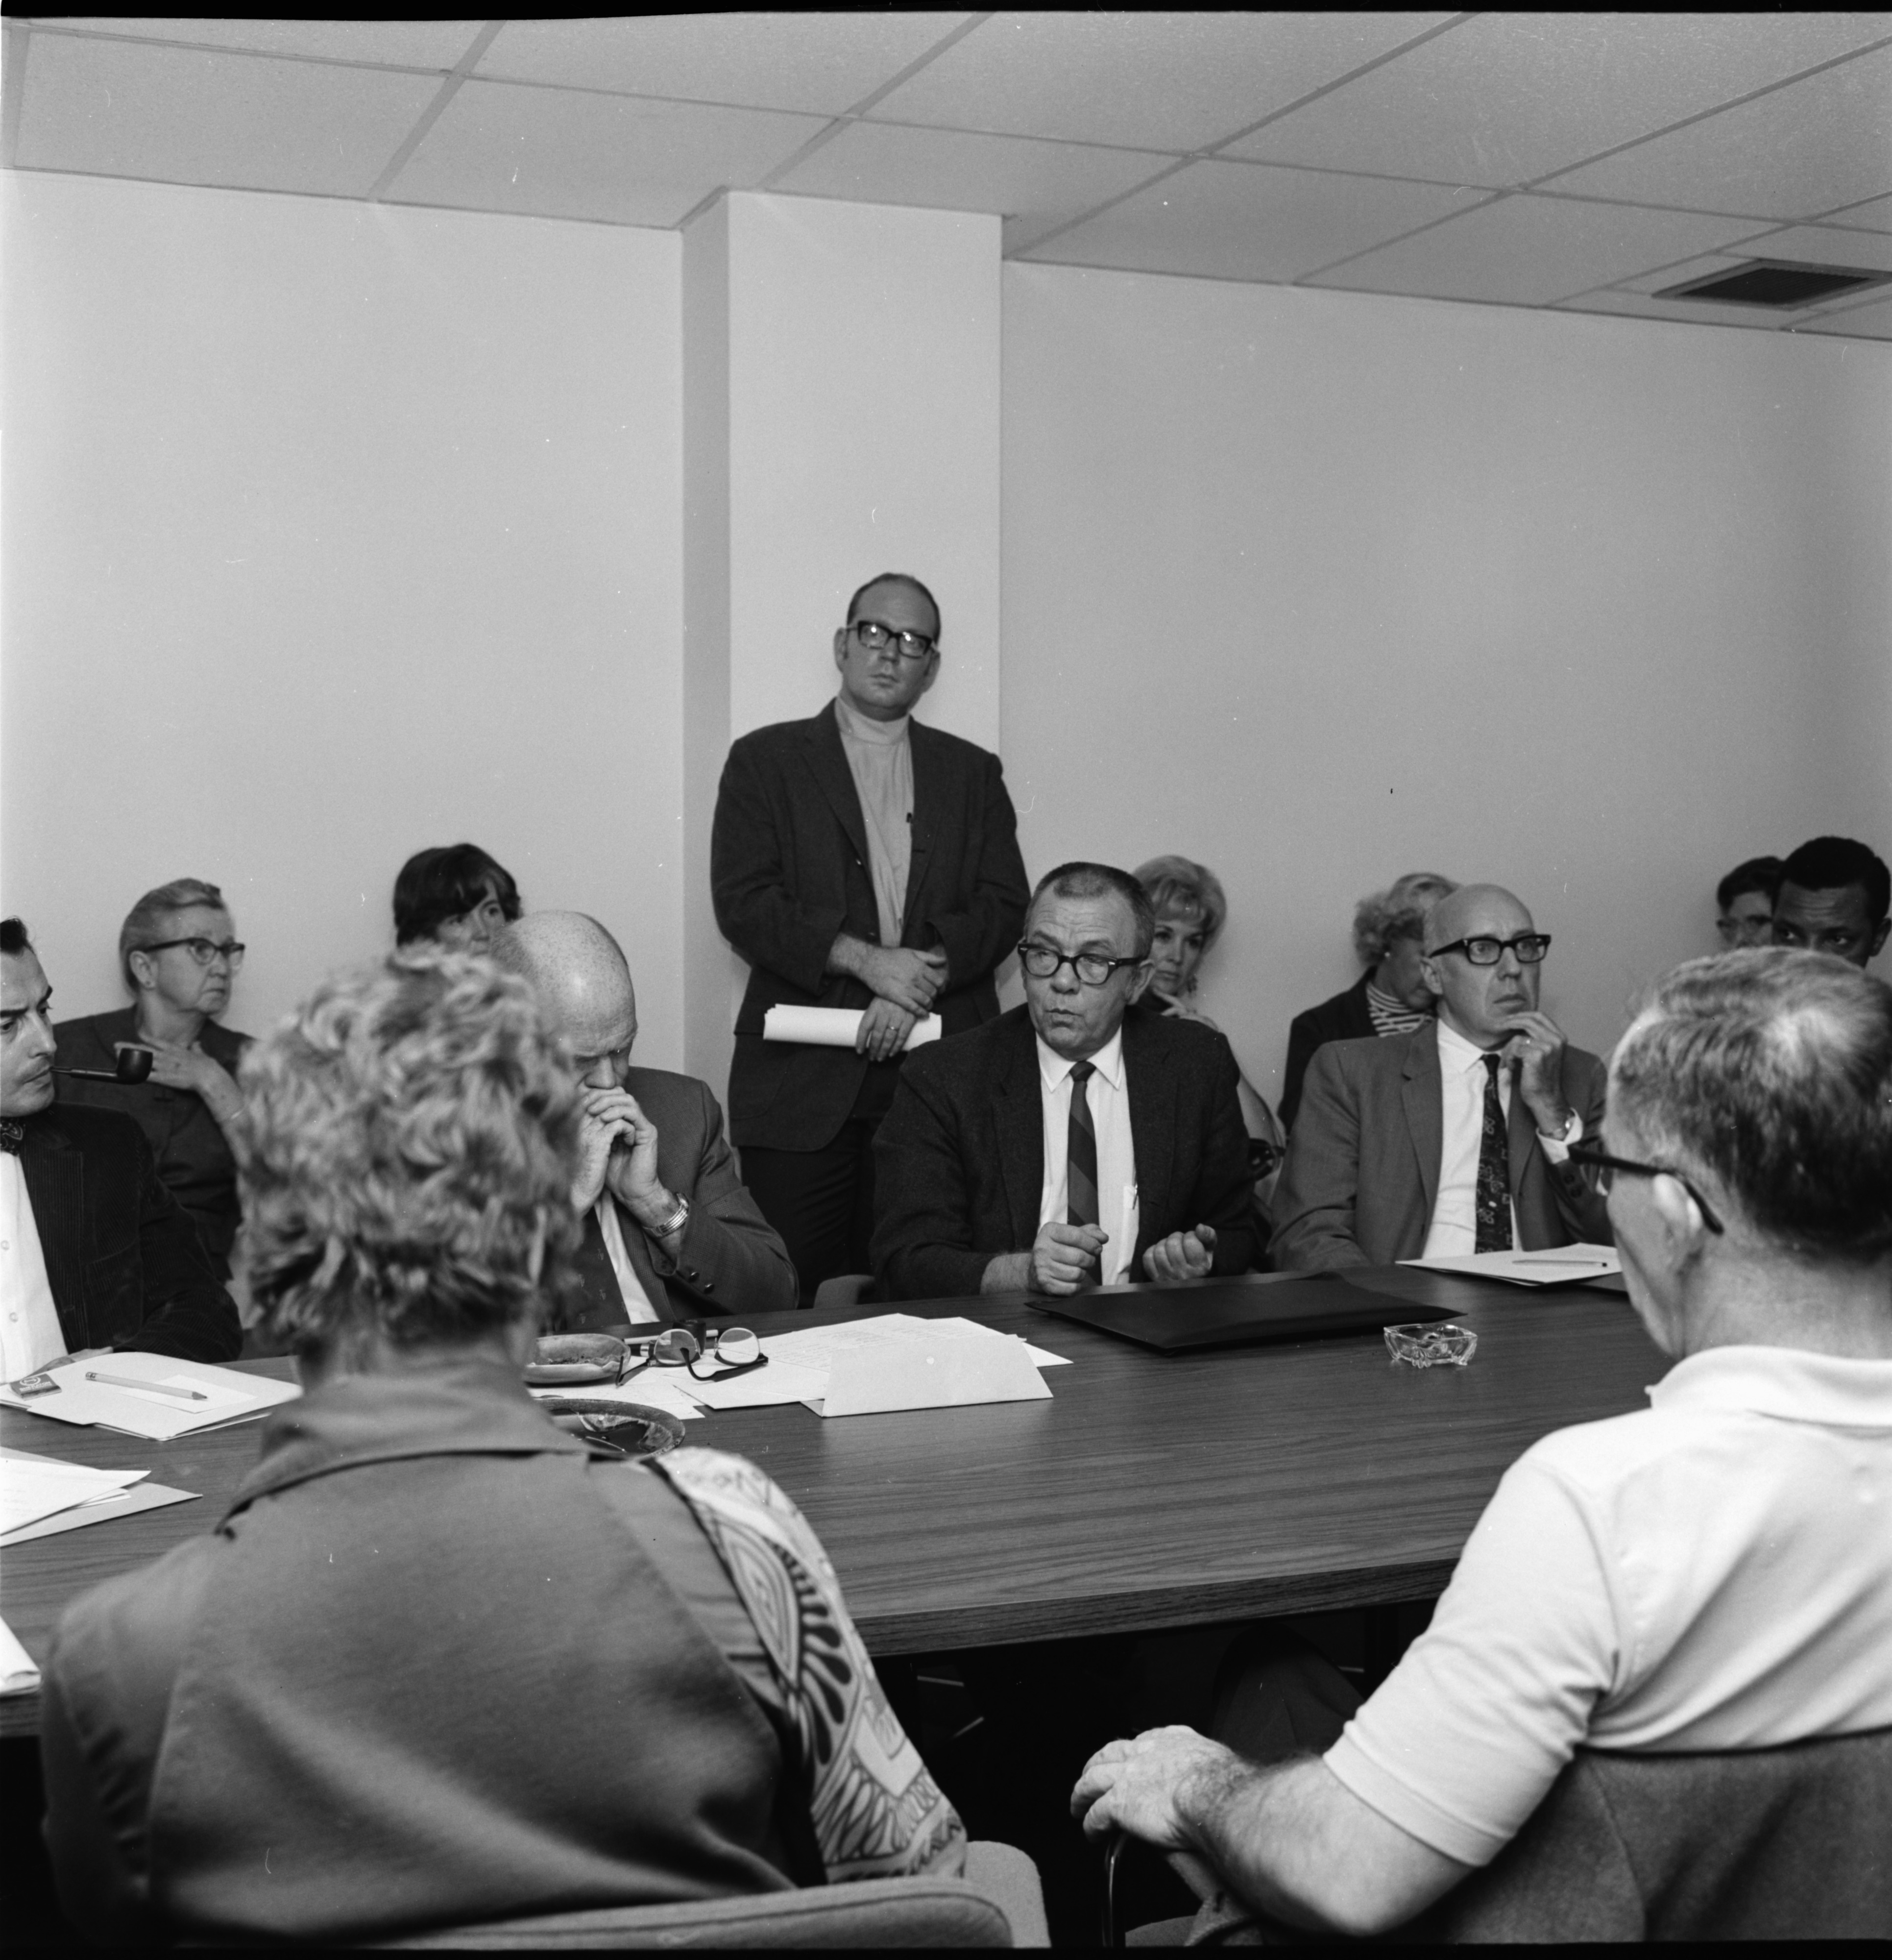 Meeting of the Washtenaw Community Mental Health Board, September 1969 image